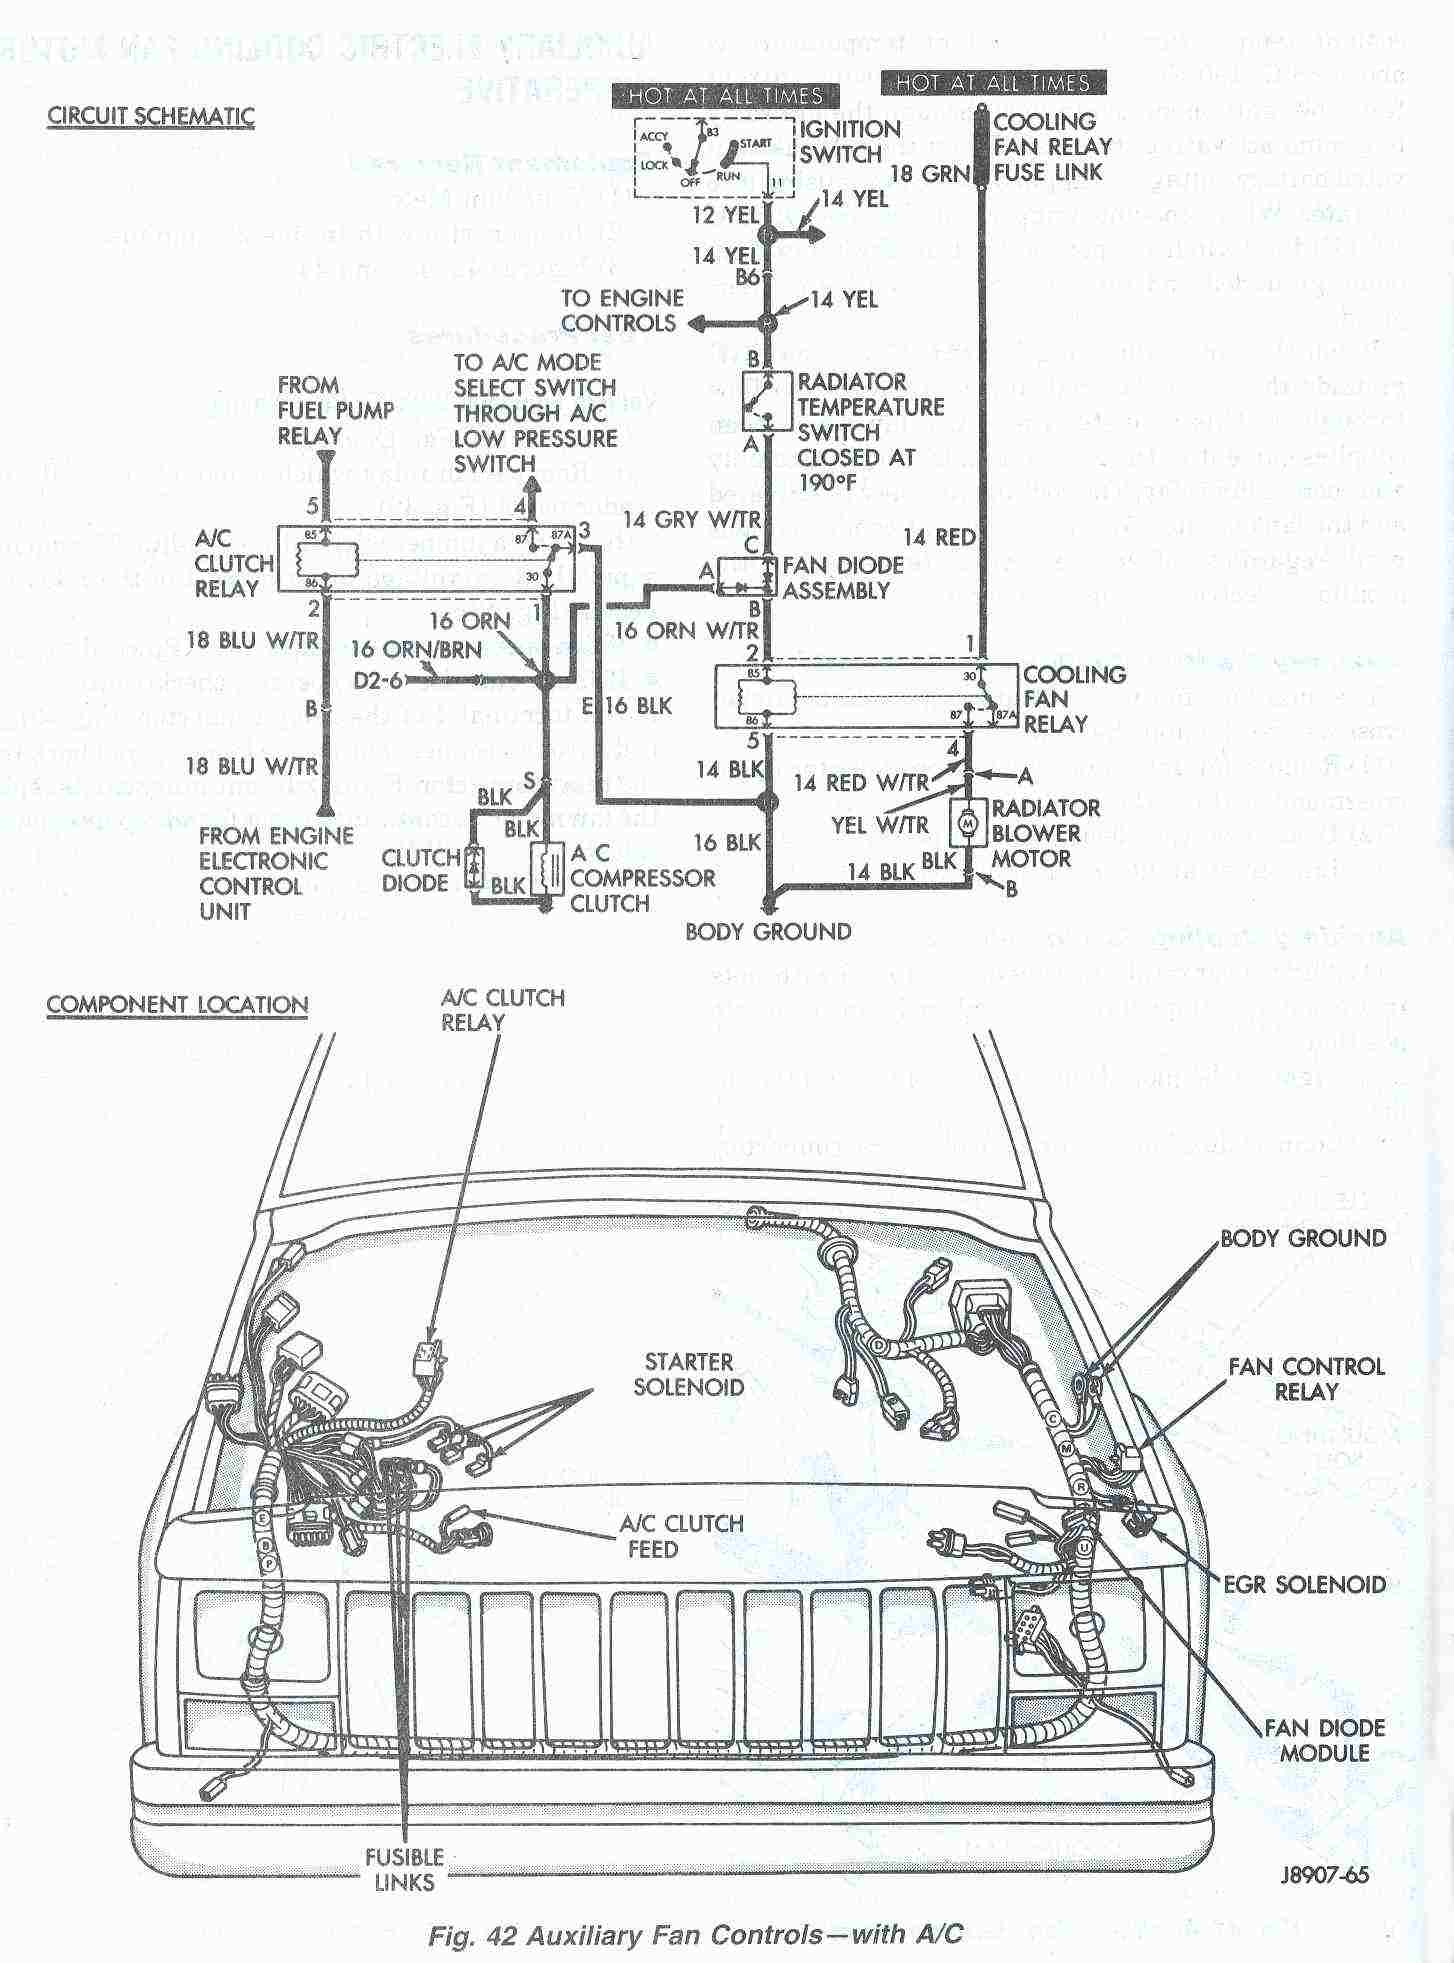 1989 jeep cherokee fuse diagram online wiring diagramjeep cherokee cooling system electric cooling fan troubleshootingtest procedures for vehicle equipped with air conditioning